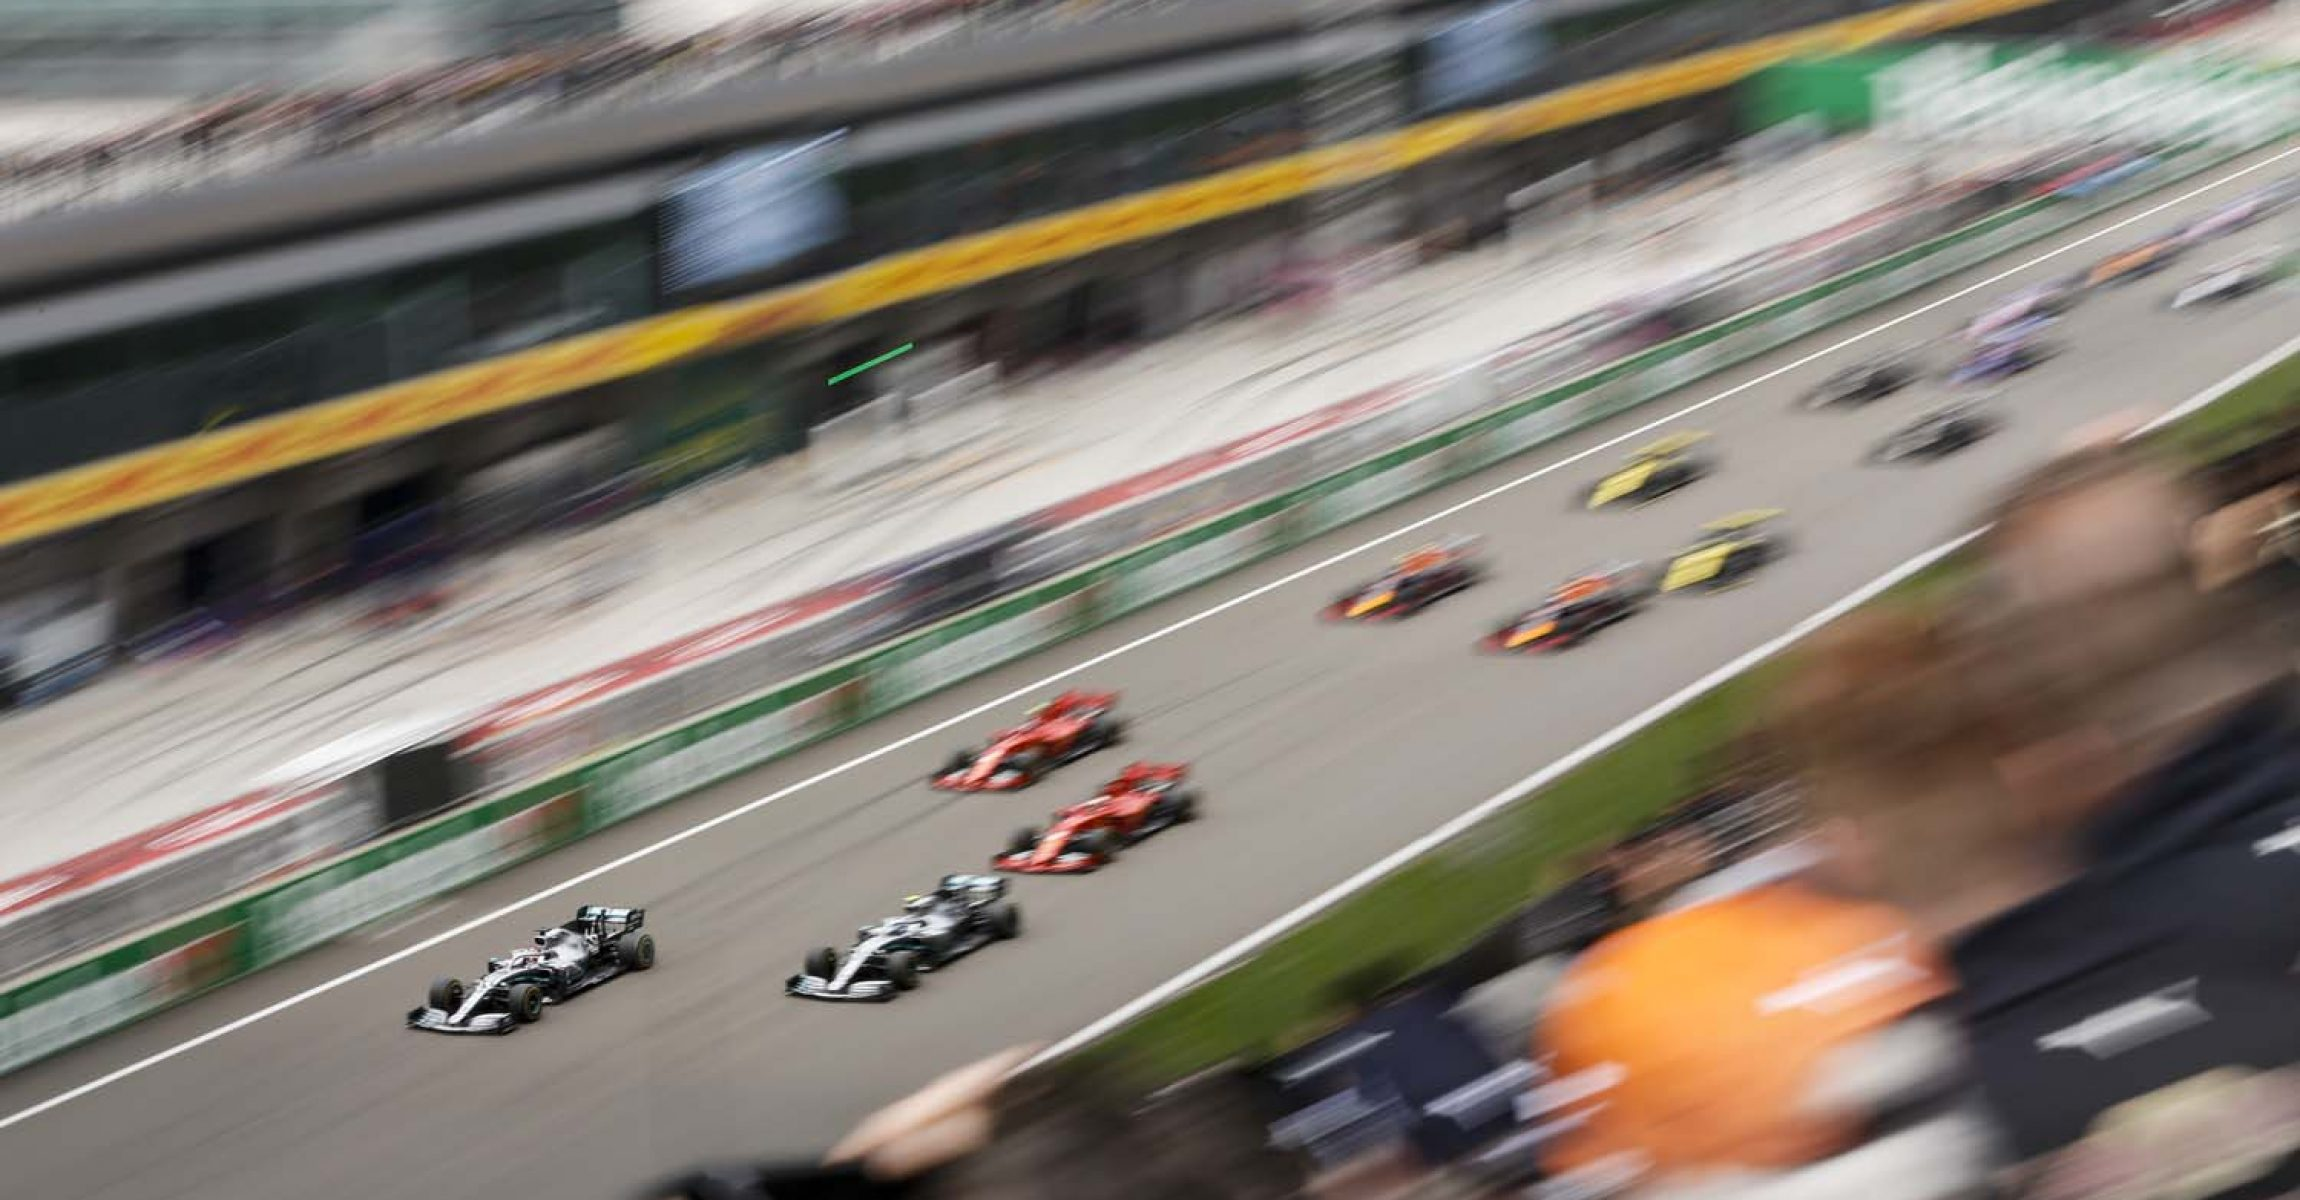 SHANGHAI INTERNATIONAL CIRCUIT, CHINA - APRIL 14: Valtteri Bottas, Mercedes AMG W10, Lewis Hamilton, Mercedes AMG F1 W10, Sebastian Vettel, Ferrari SF90 and Charles Leclerc, Ferrari SF90 at the start of the race during the Chinese GP at Shanghai International Circuit on April 14, 2019 in Shanghai International Circuit, China. (Photo by Zak Mauger / LAT Images)